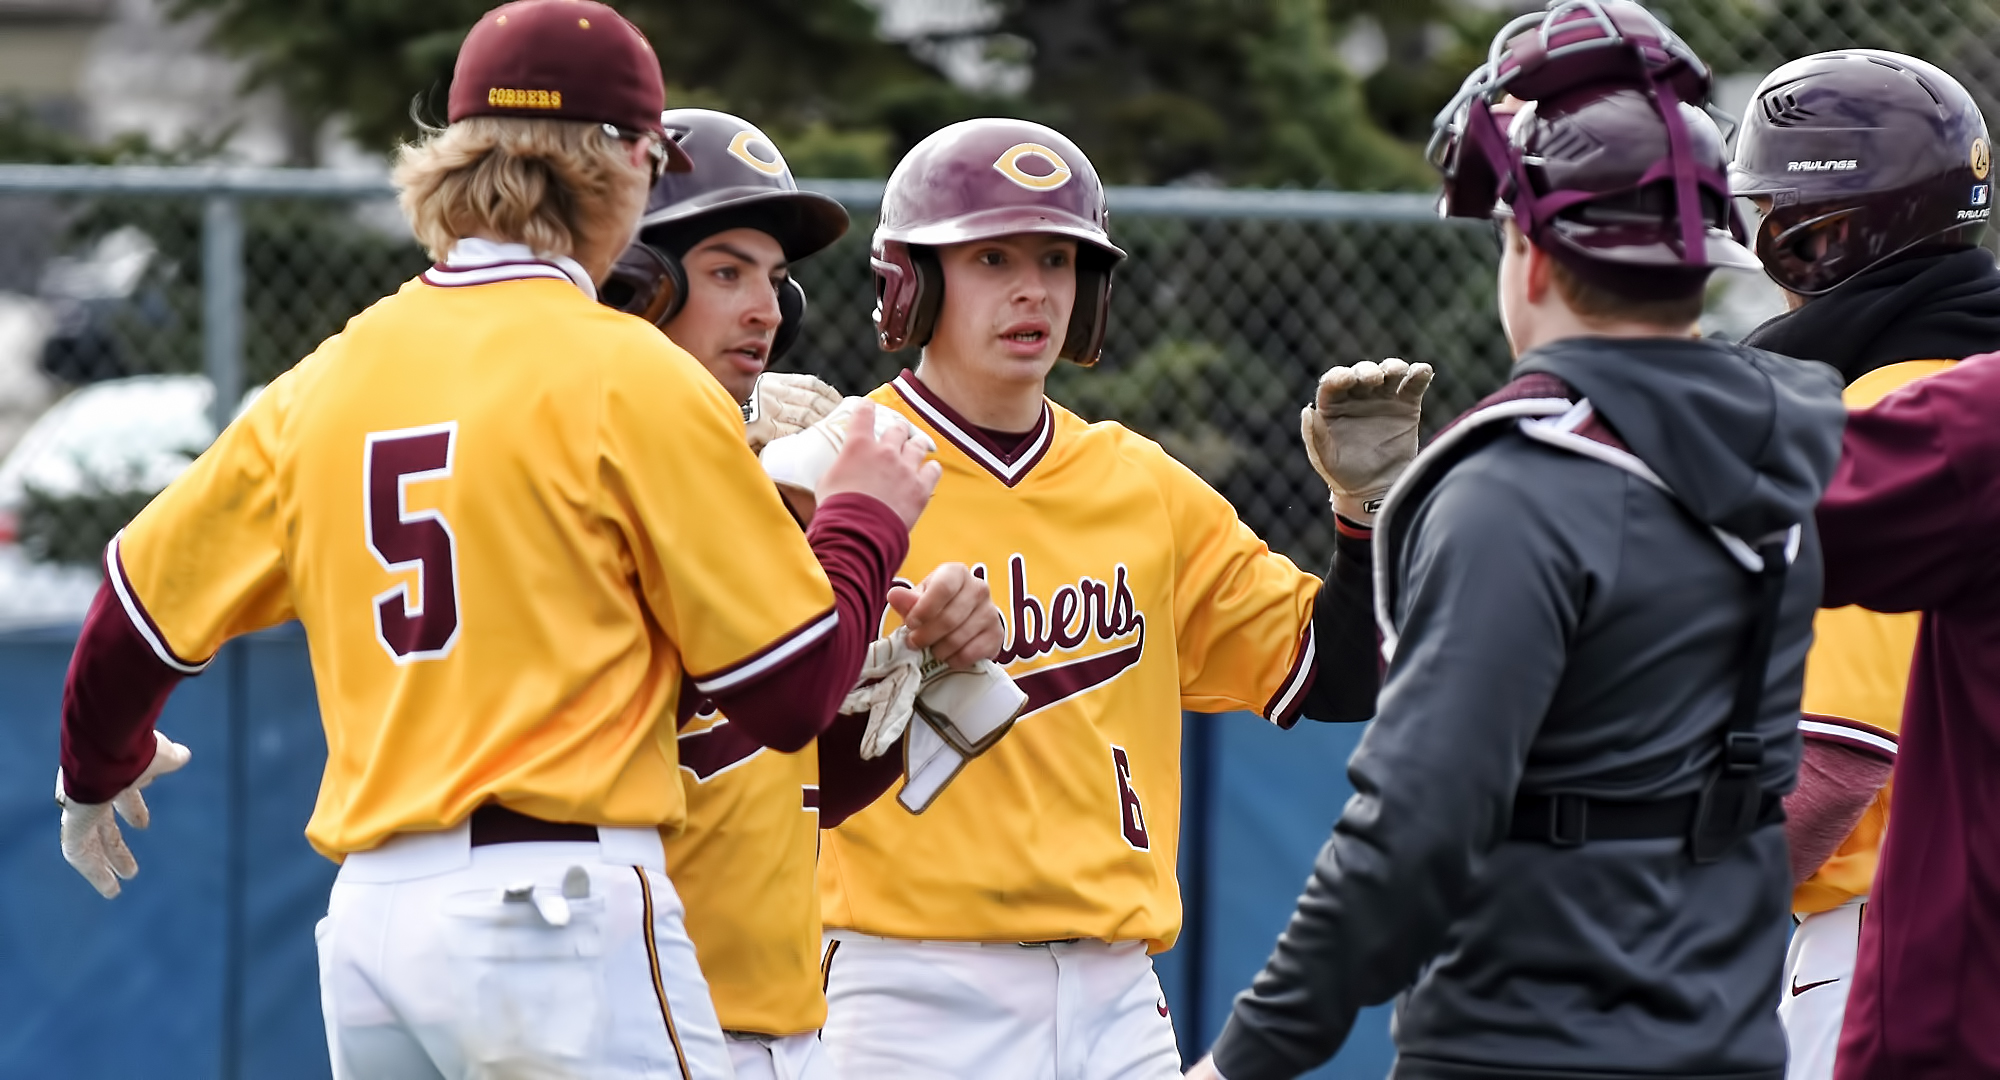 Senior Nate Hoeft had a hit in Game 2 of the Cobbers' split at St. Olaf.